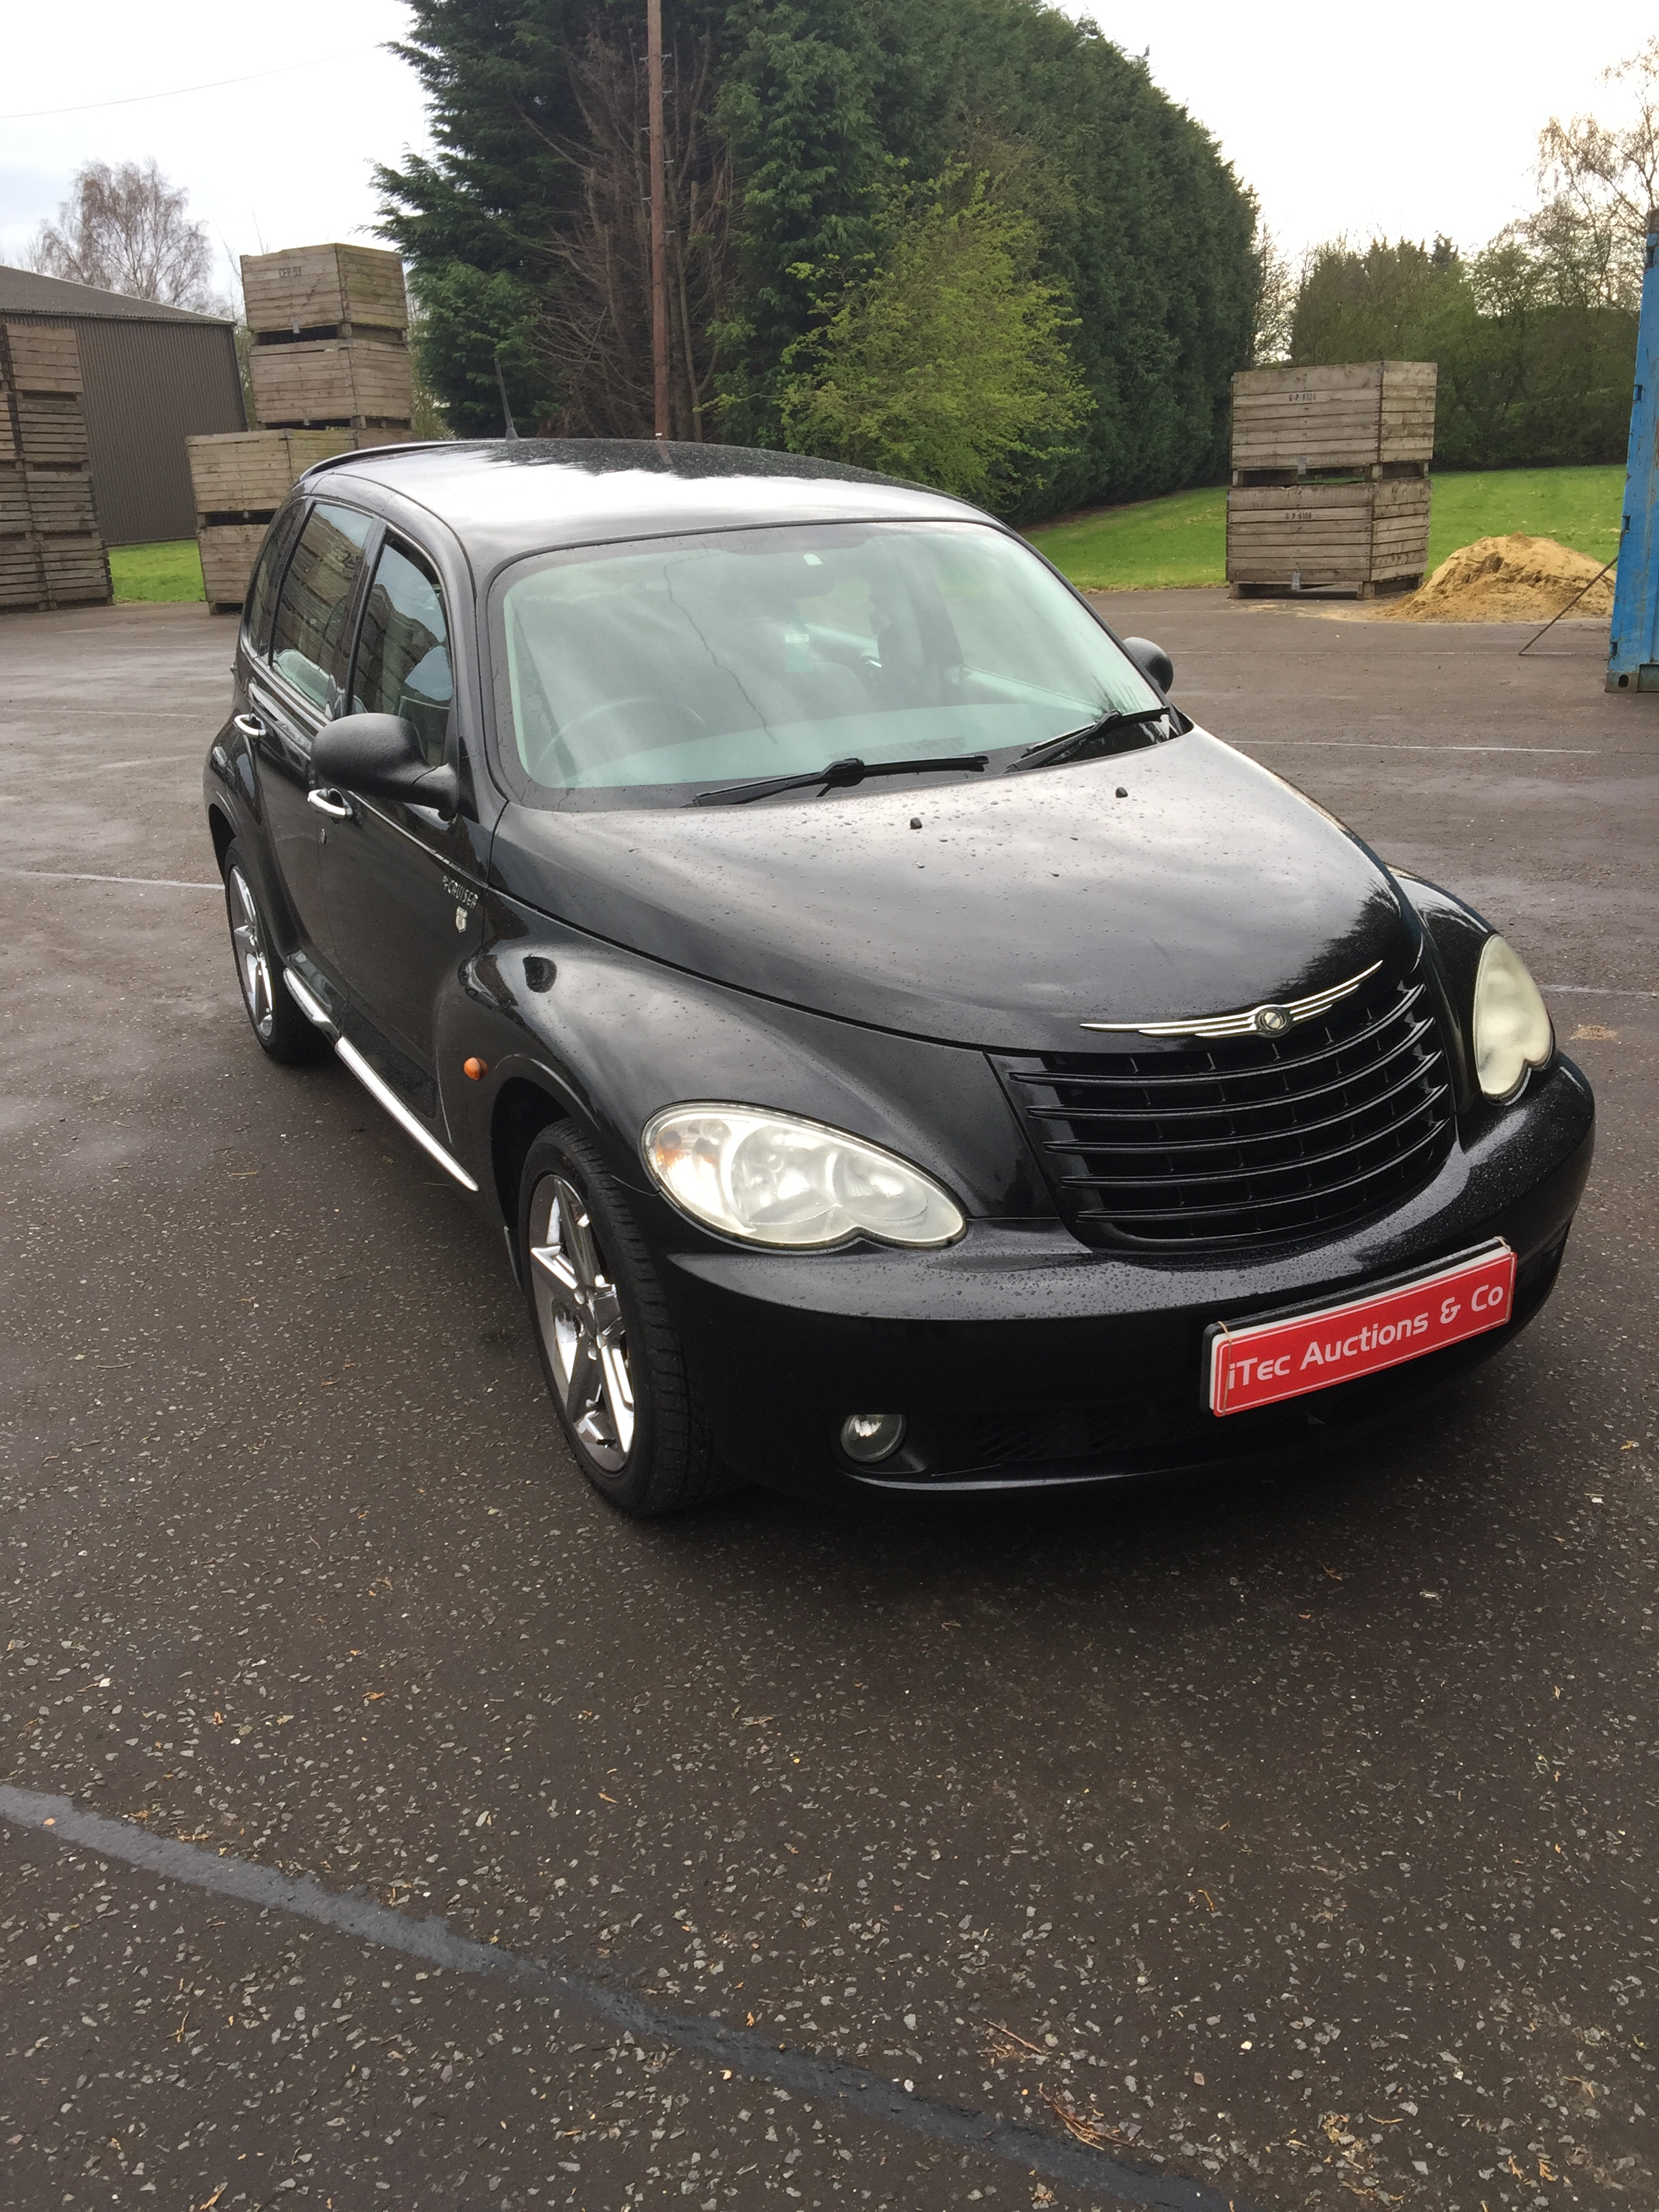 reg 2006 chrysler pt cruiser route 66 crd mot till 3 2017. Black Bedroom Furniture Sets. Home Design Ideas